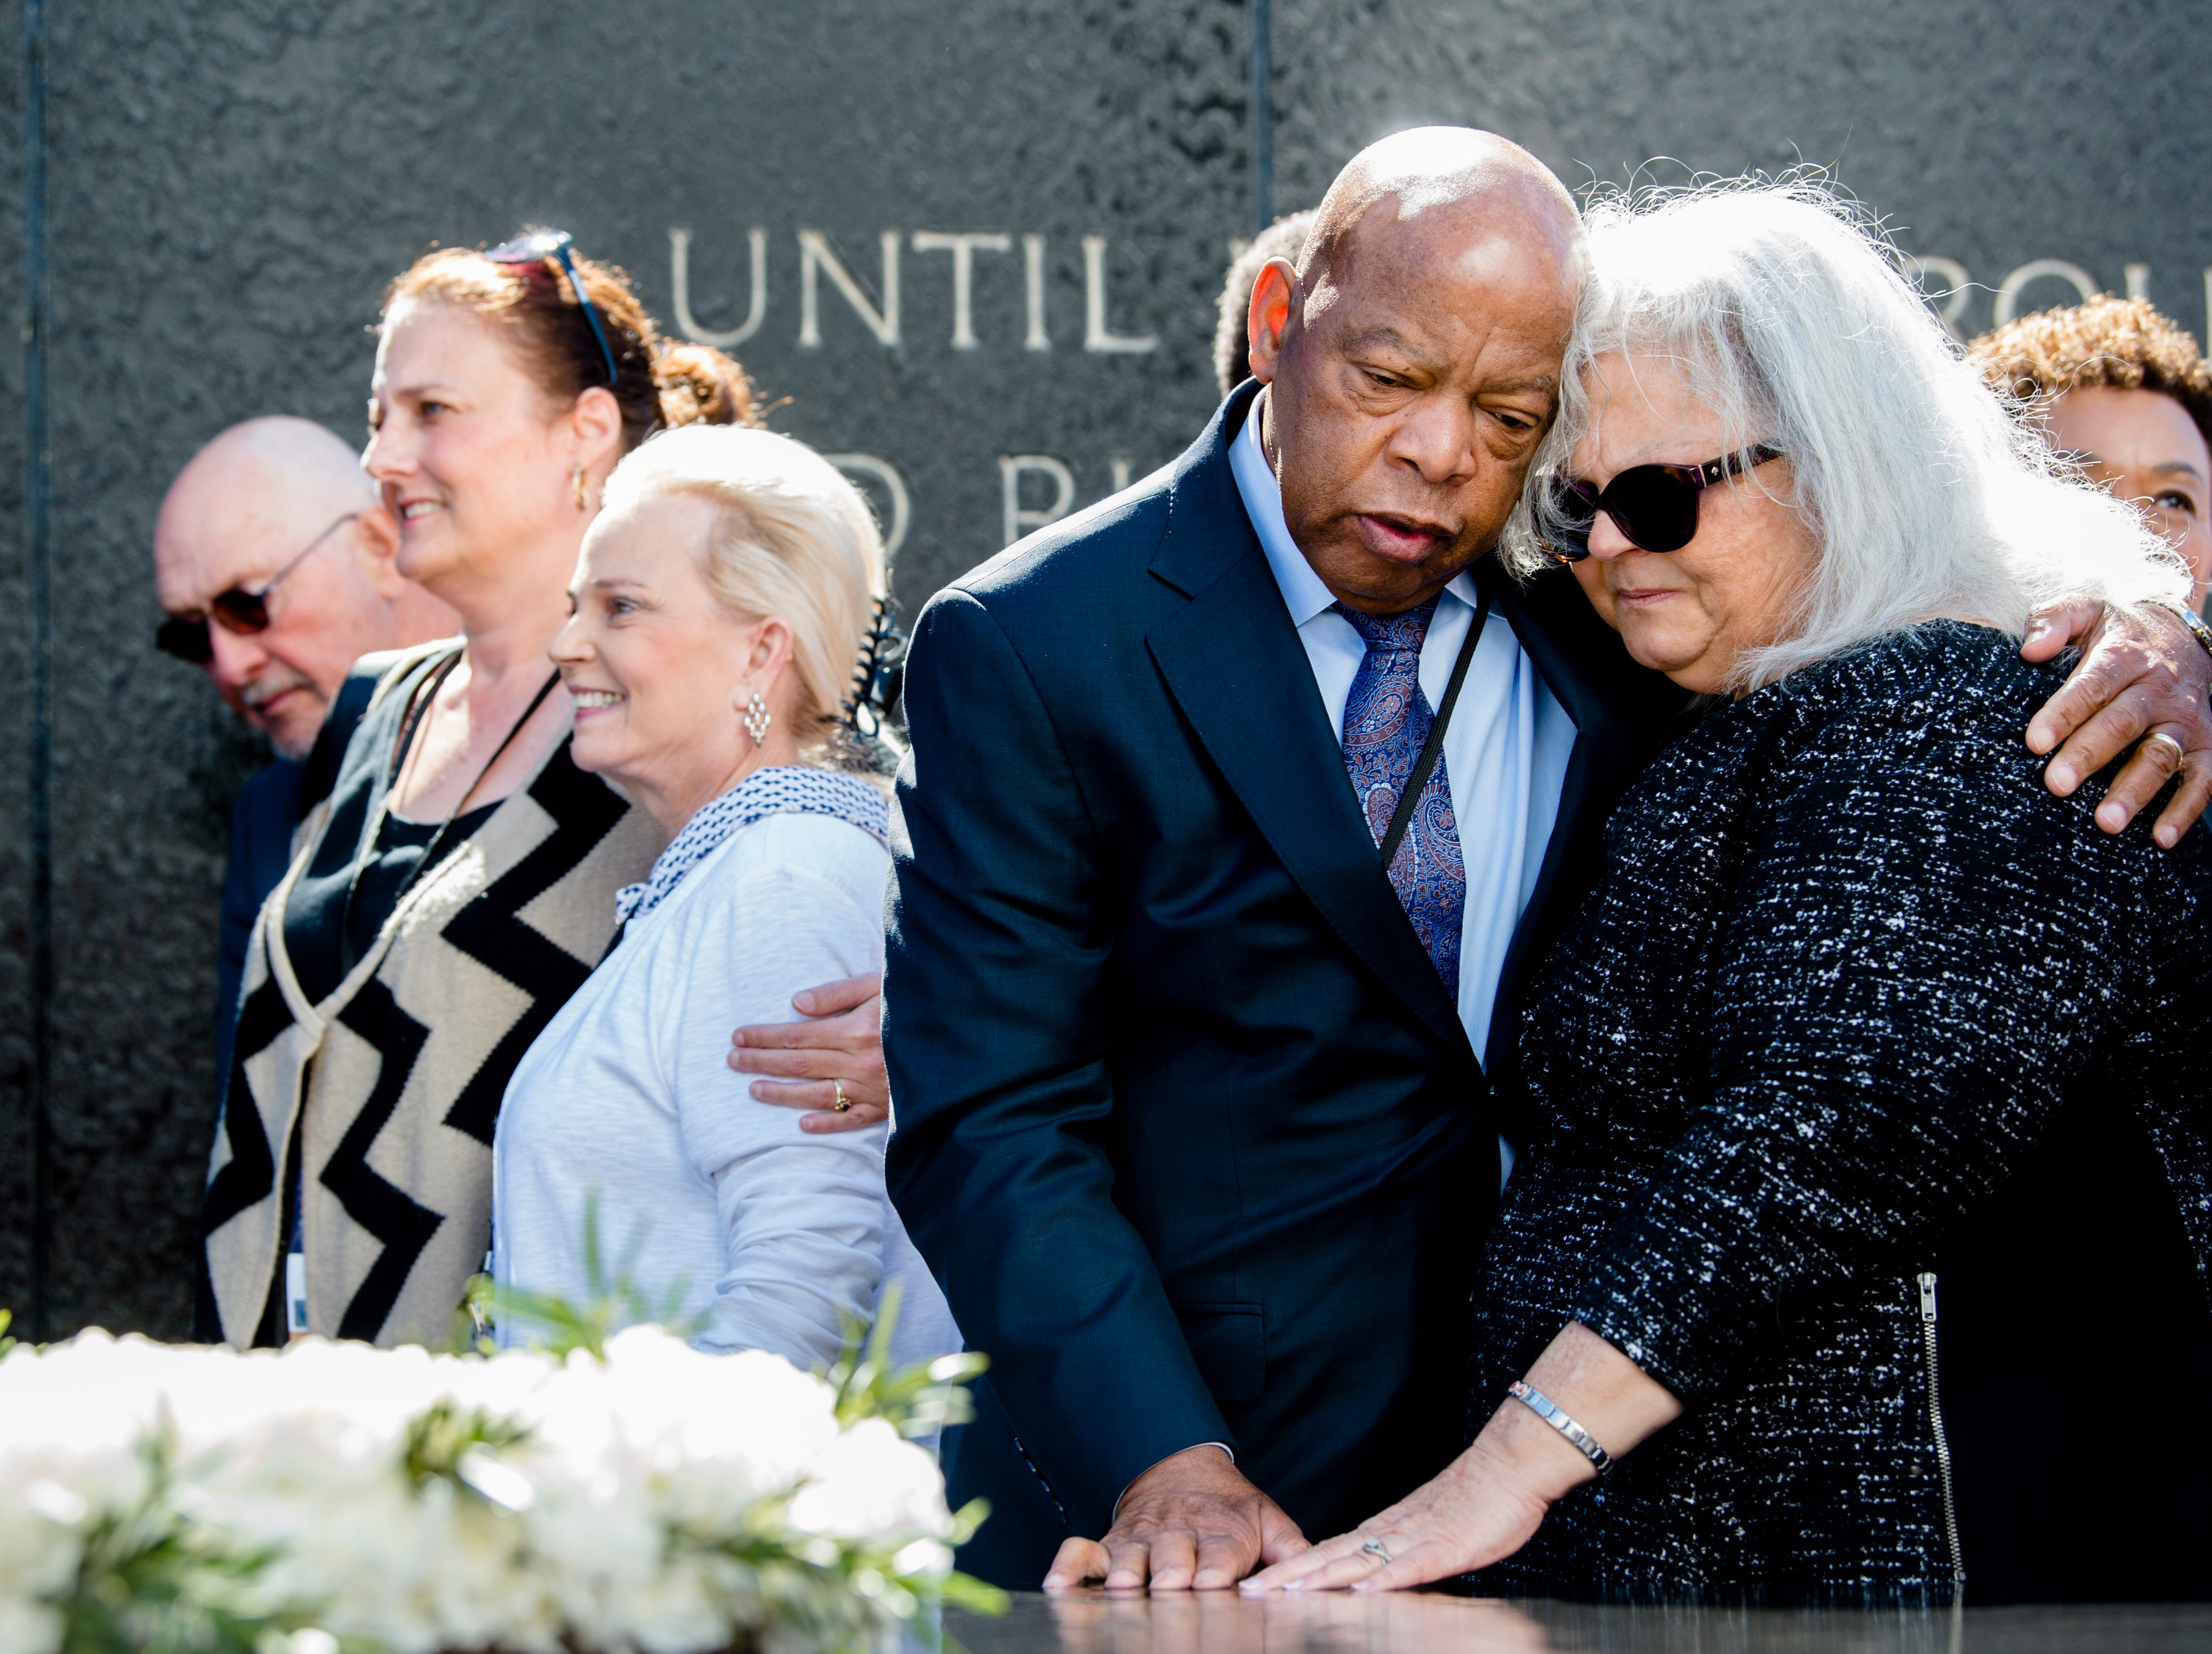 March 3, 2018: Congressman John Lewis embraces Susan Bro, mother of Heather Heyer, while touching the Civil Rights Memorial, during a wreath laying ceremony in Montgomery, Ala. Heather Heyer was killed in Charlottesville, Va., on Aug. 12, 2017, while protesting the Unite the Right rally.